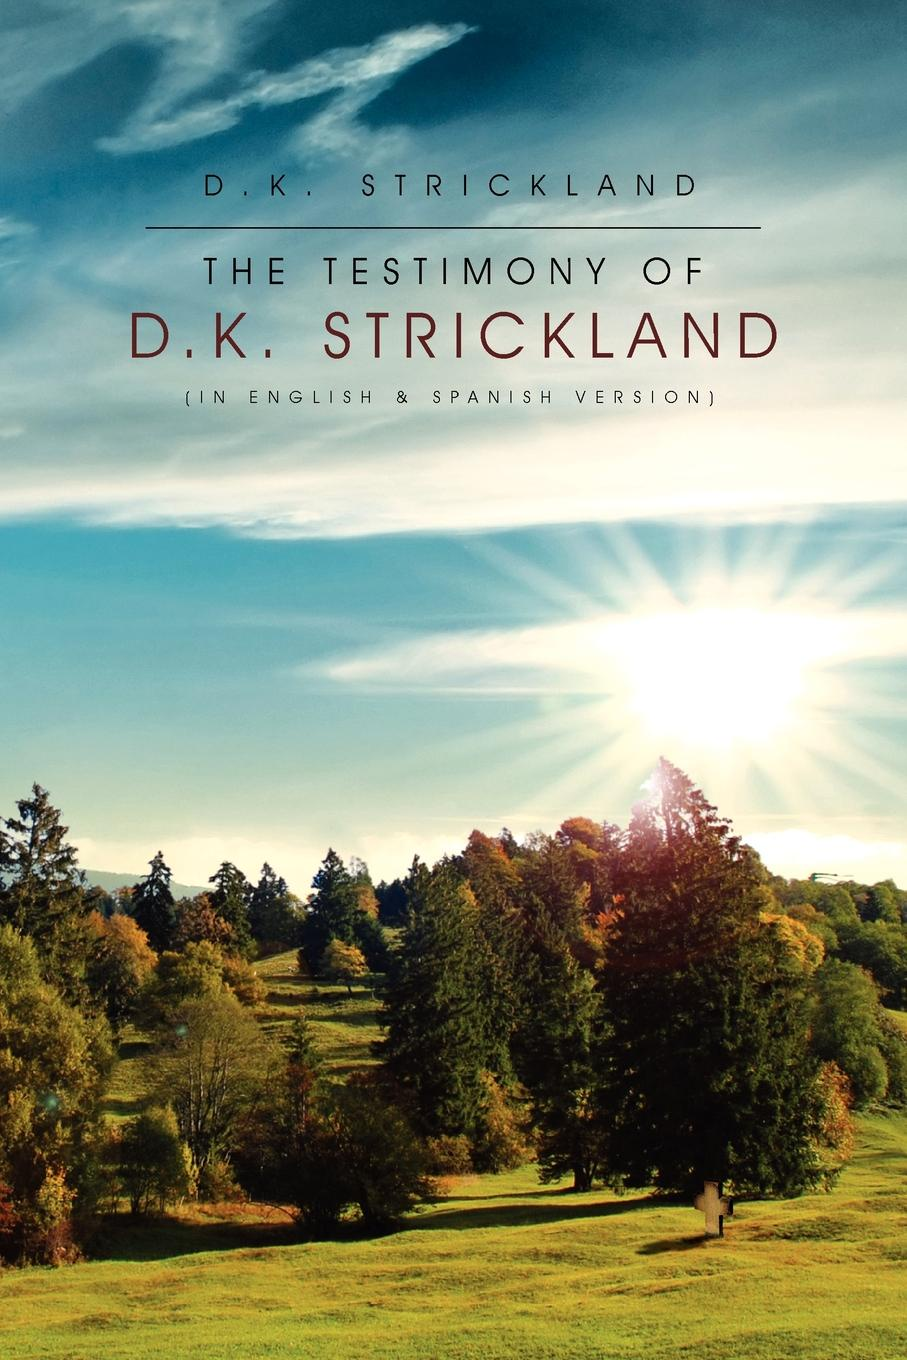 D. K. Strickland The Testimony of D.K. Strickland все цены